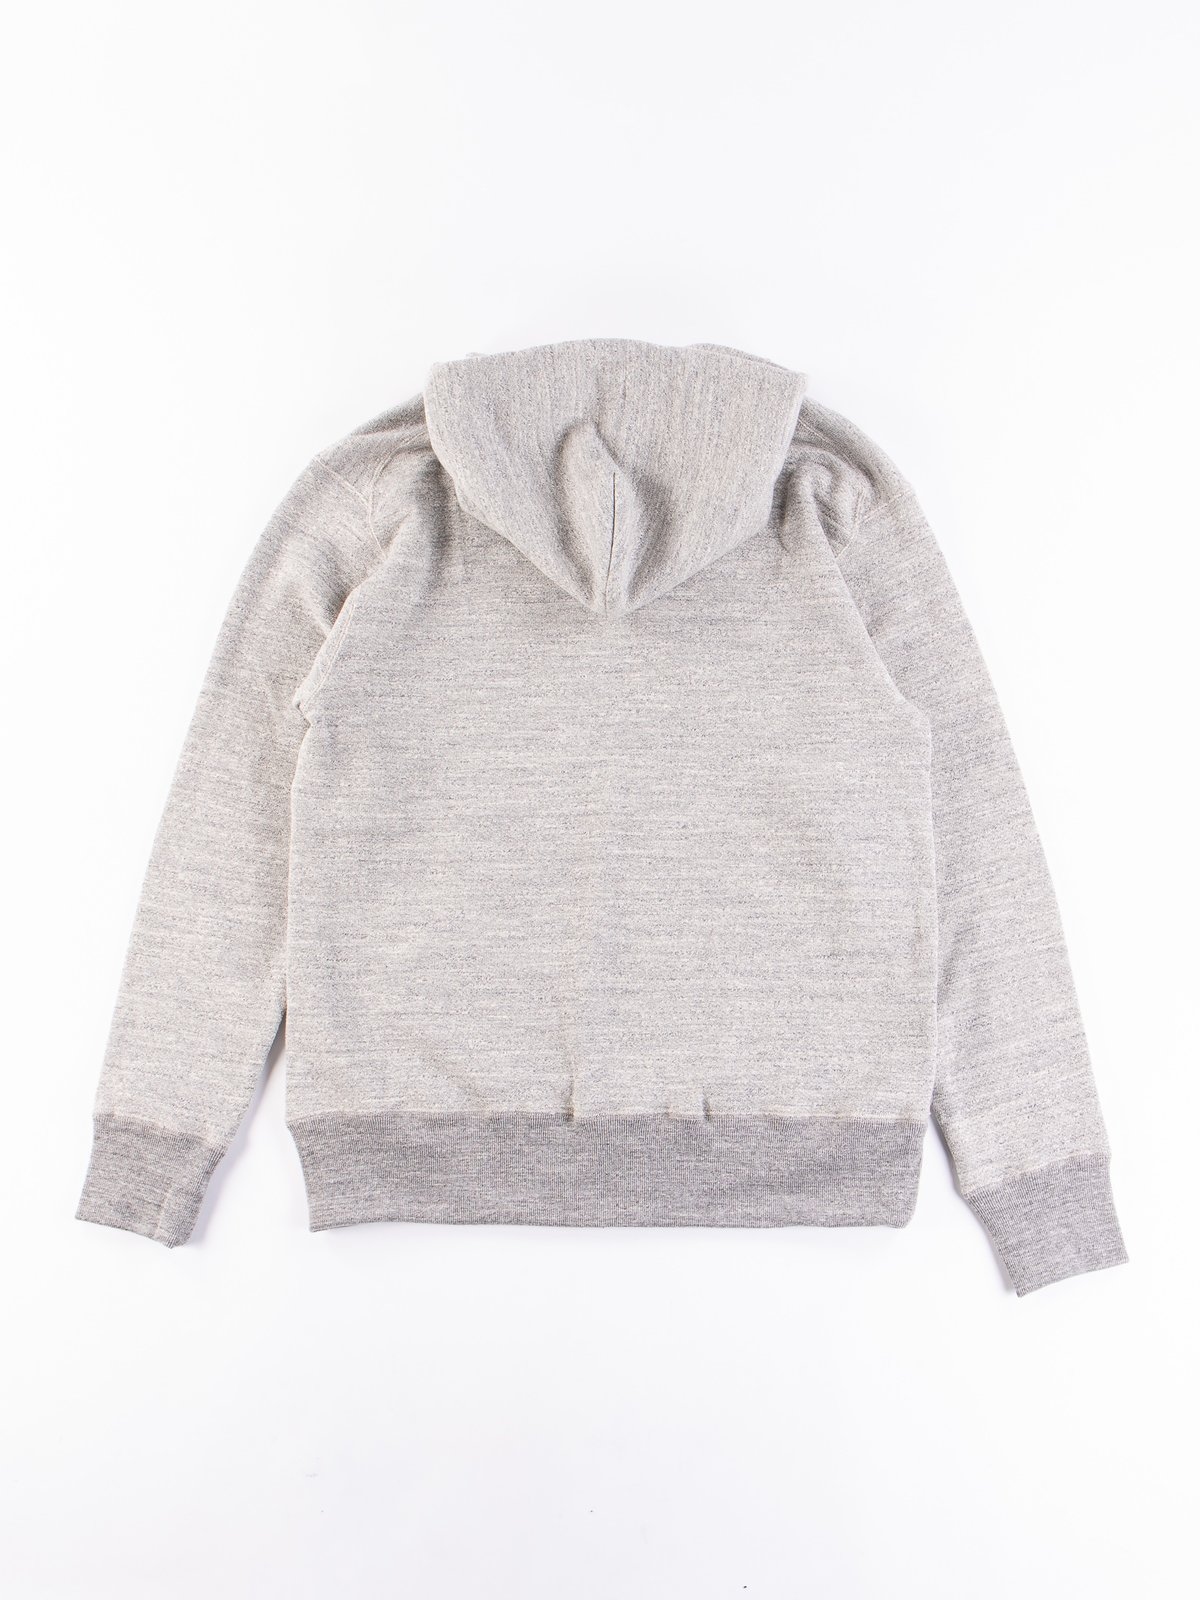 Heather Grey GG Sweat Pullover Parka - Image 5